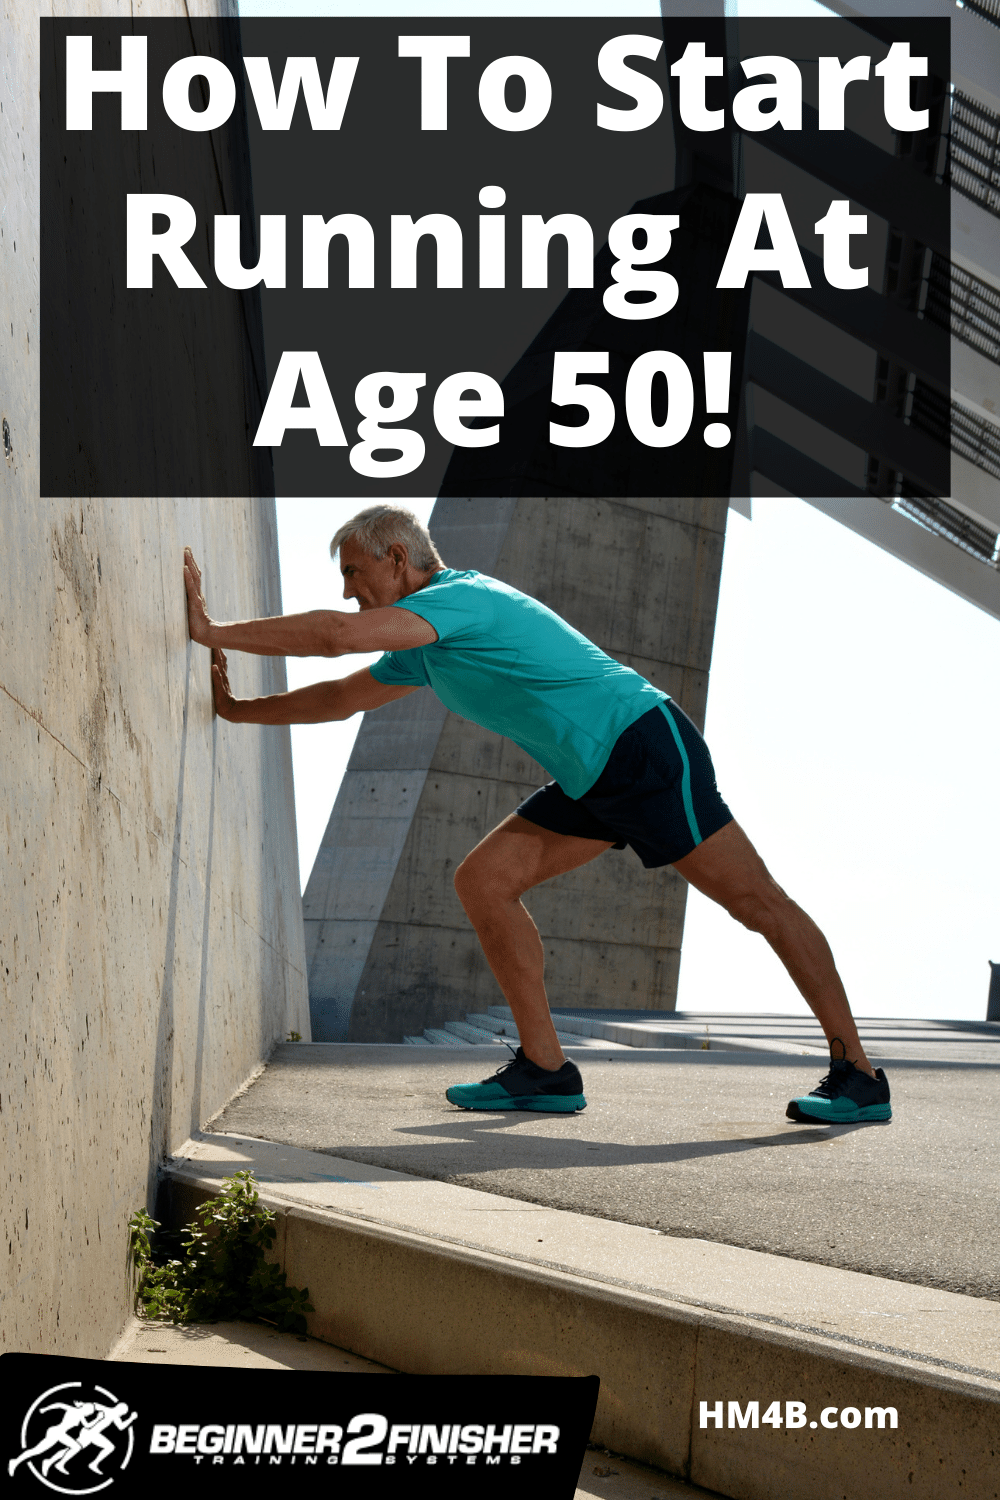 How To Start Running At Age 50 and Overweight!